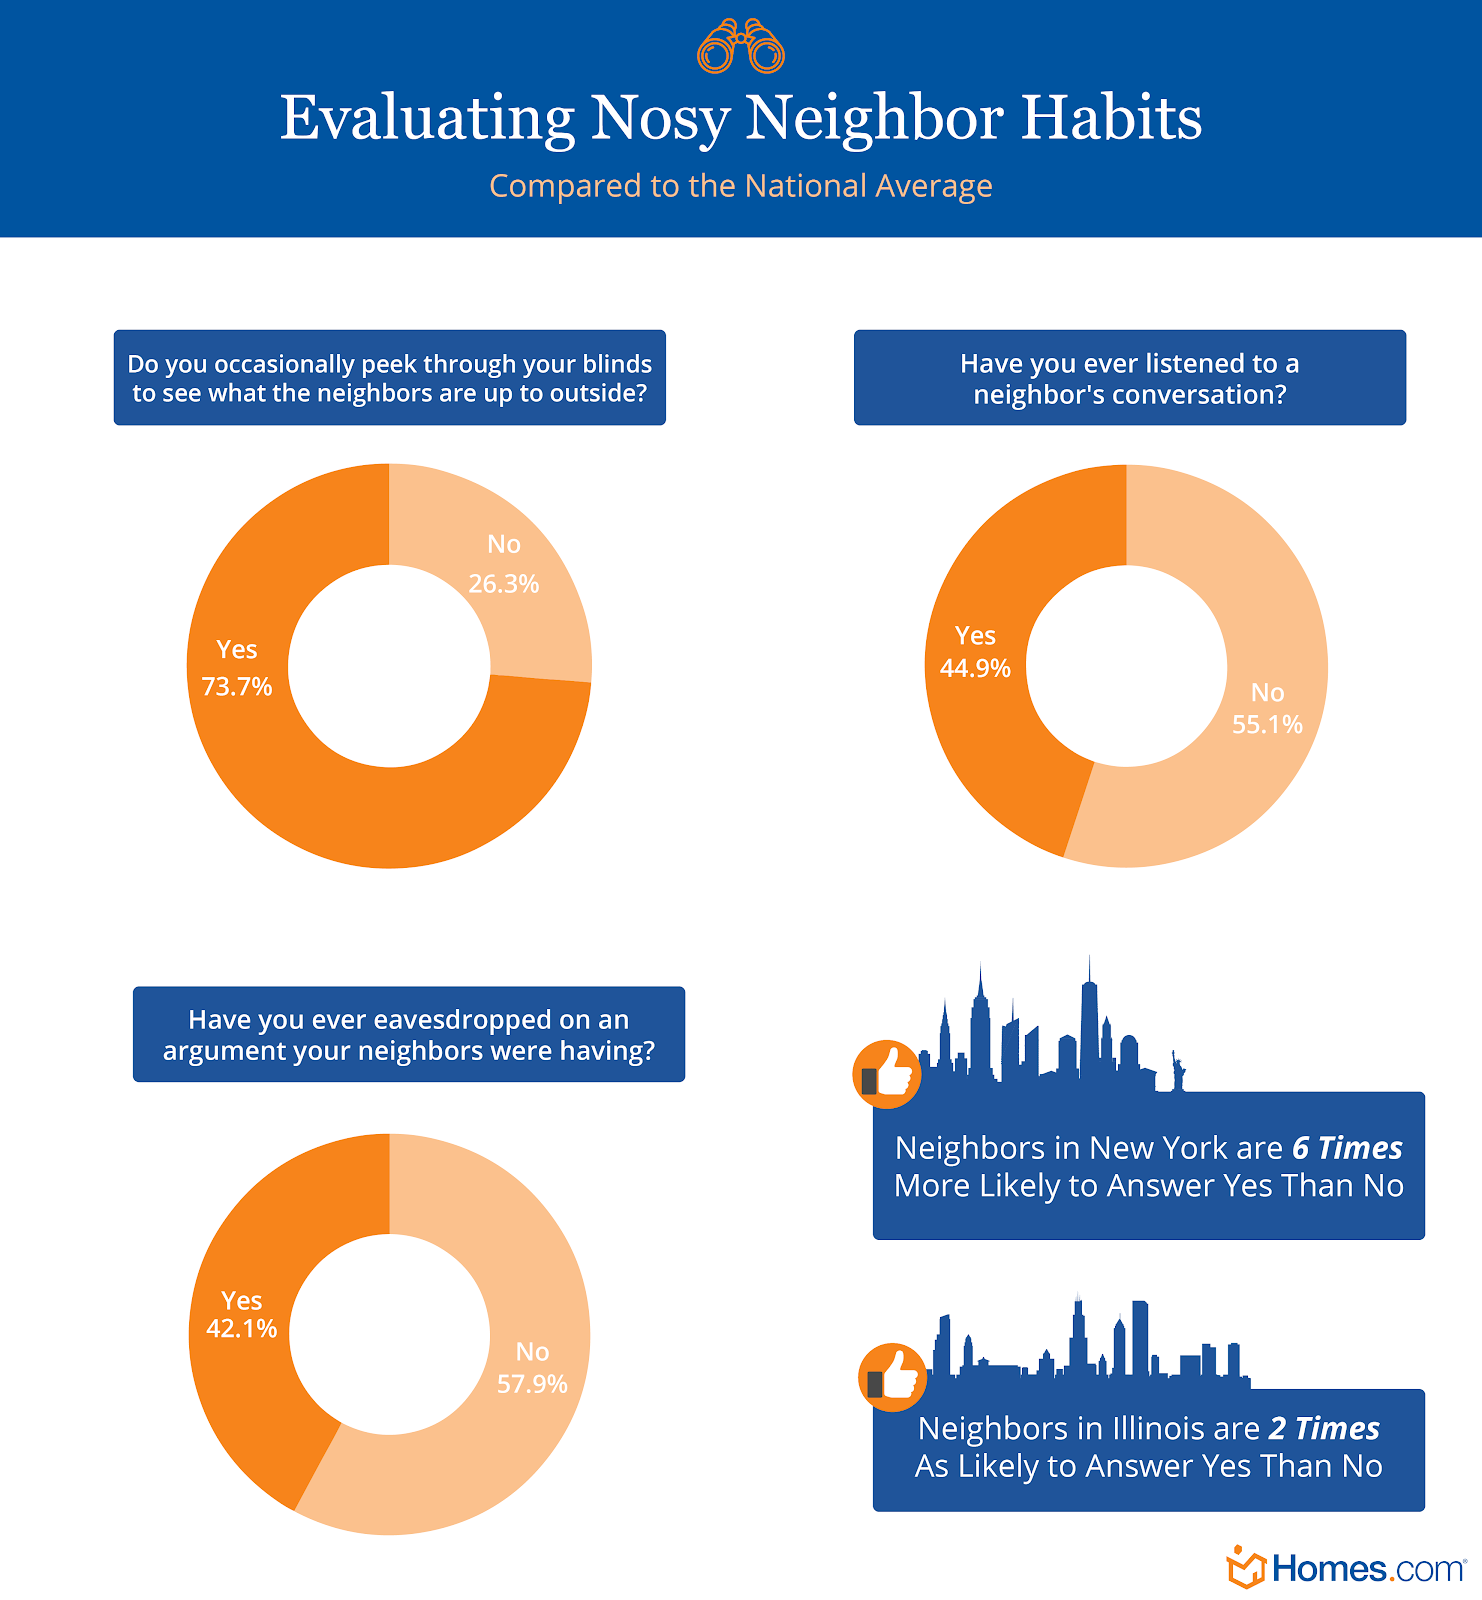 Graphics outlining nosy neighbor habits across US states